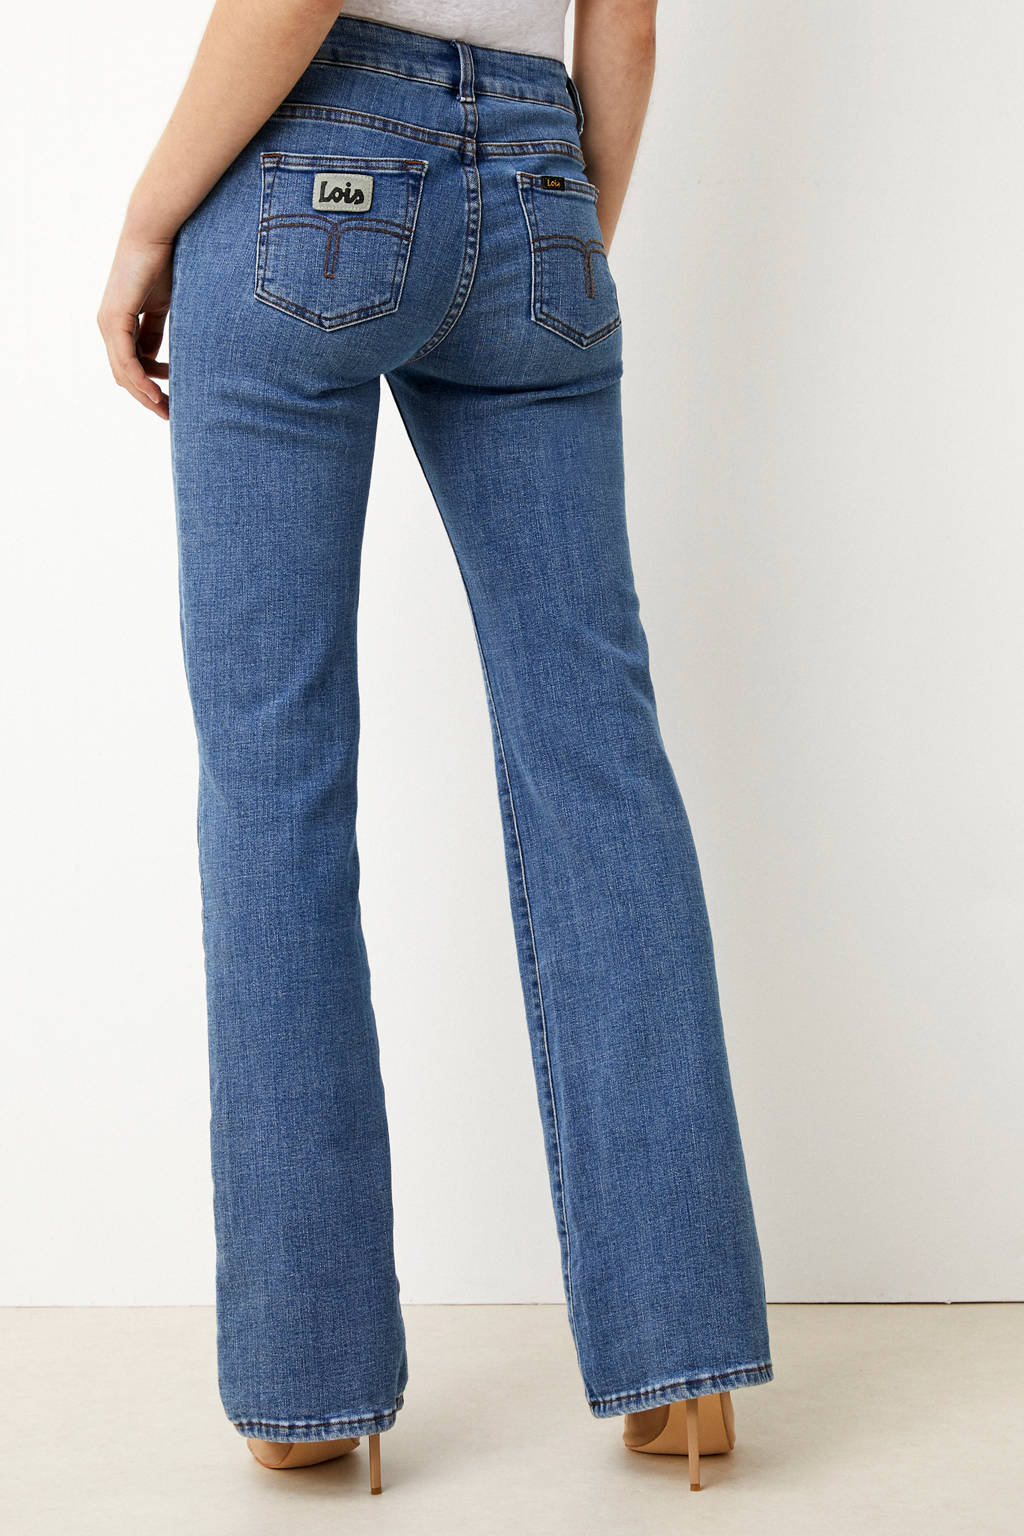 Lois high waist flared jeans donkerblauw, Donkerblauw